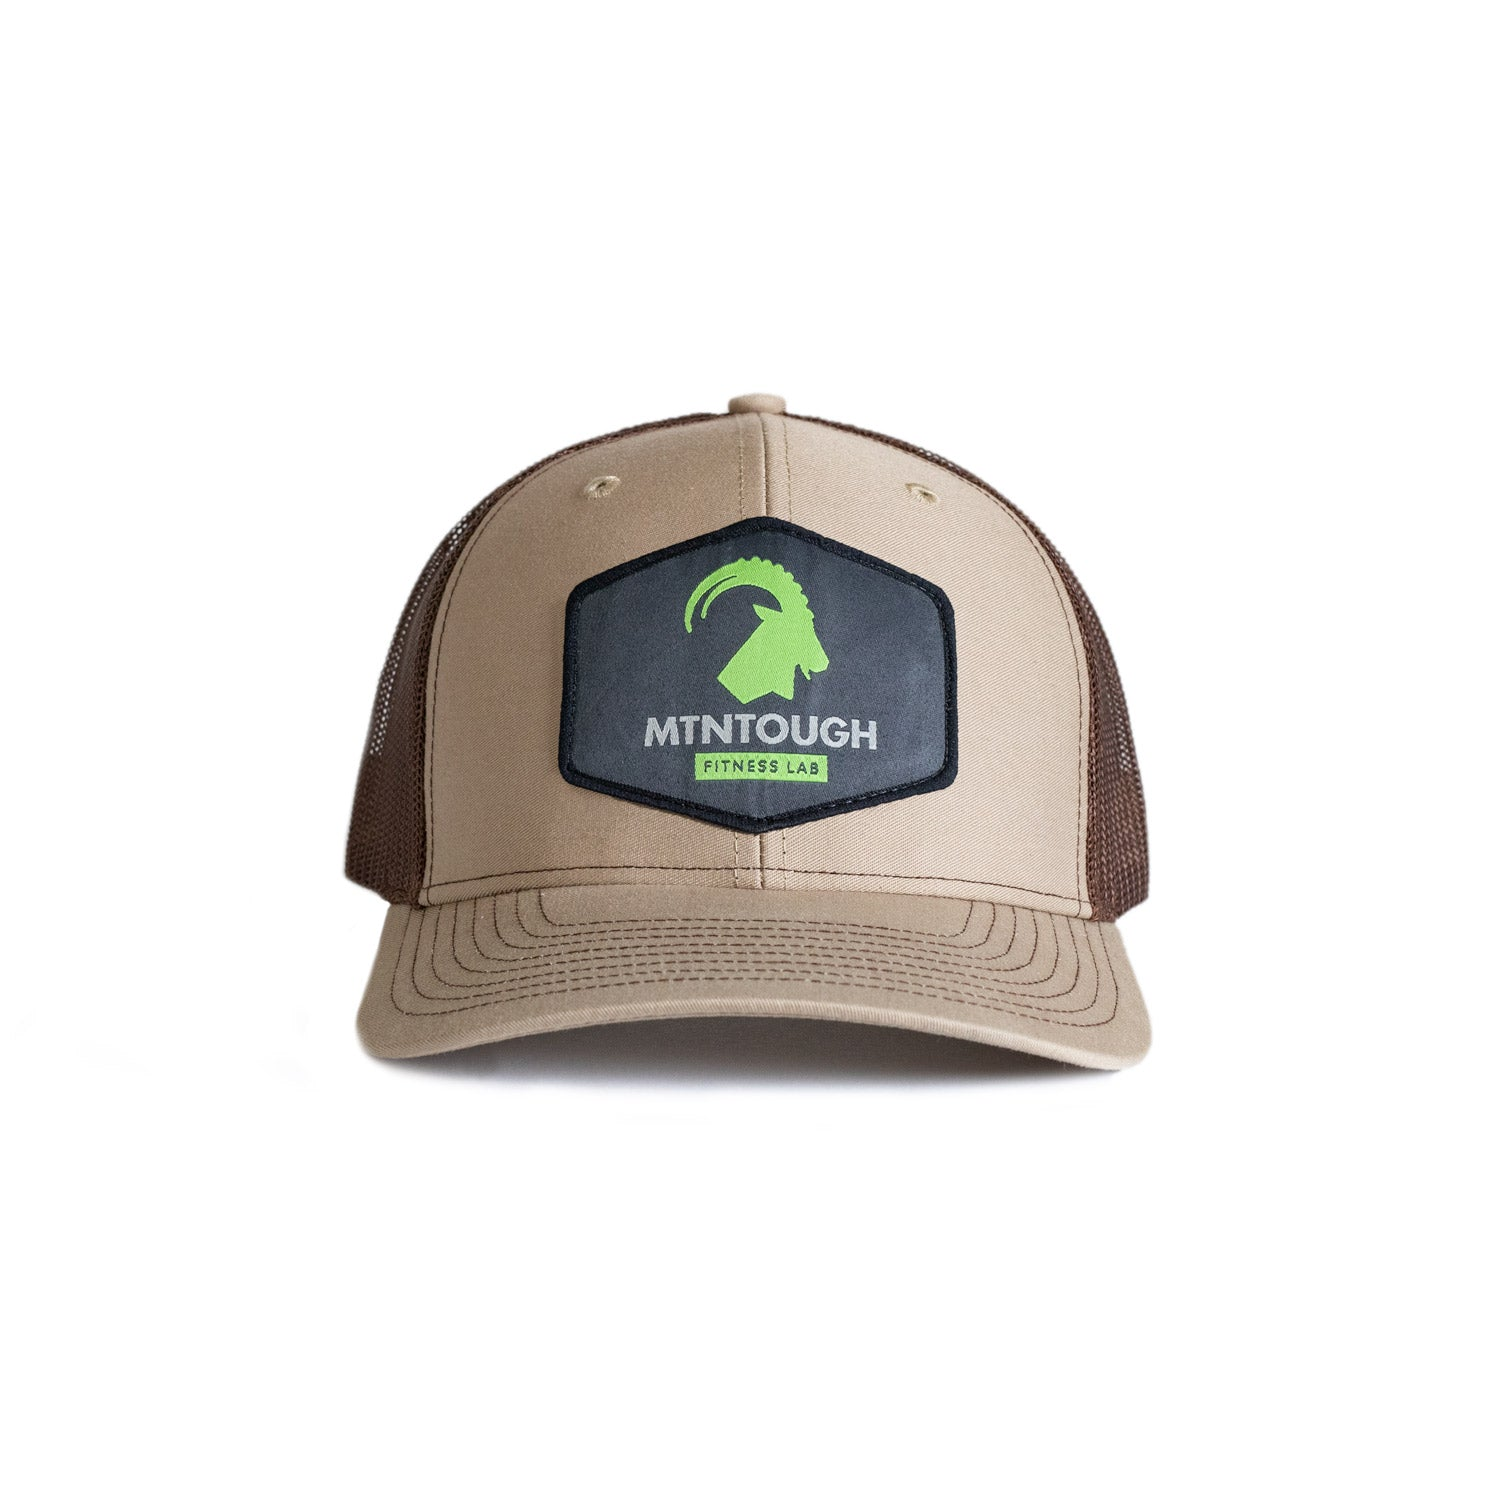 MTNTOUGH HAT - Tan Patch